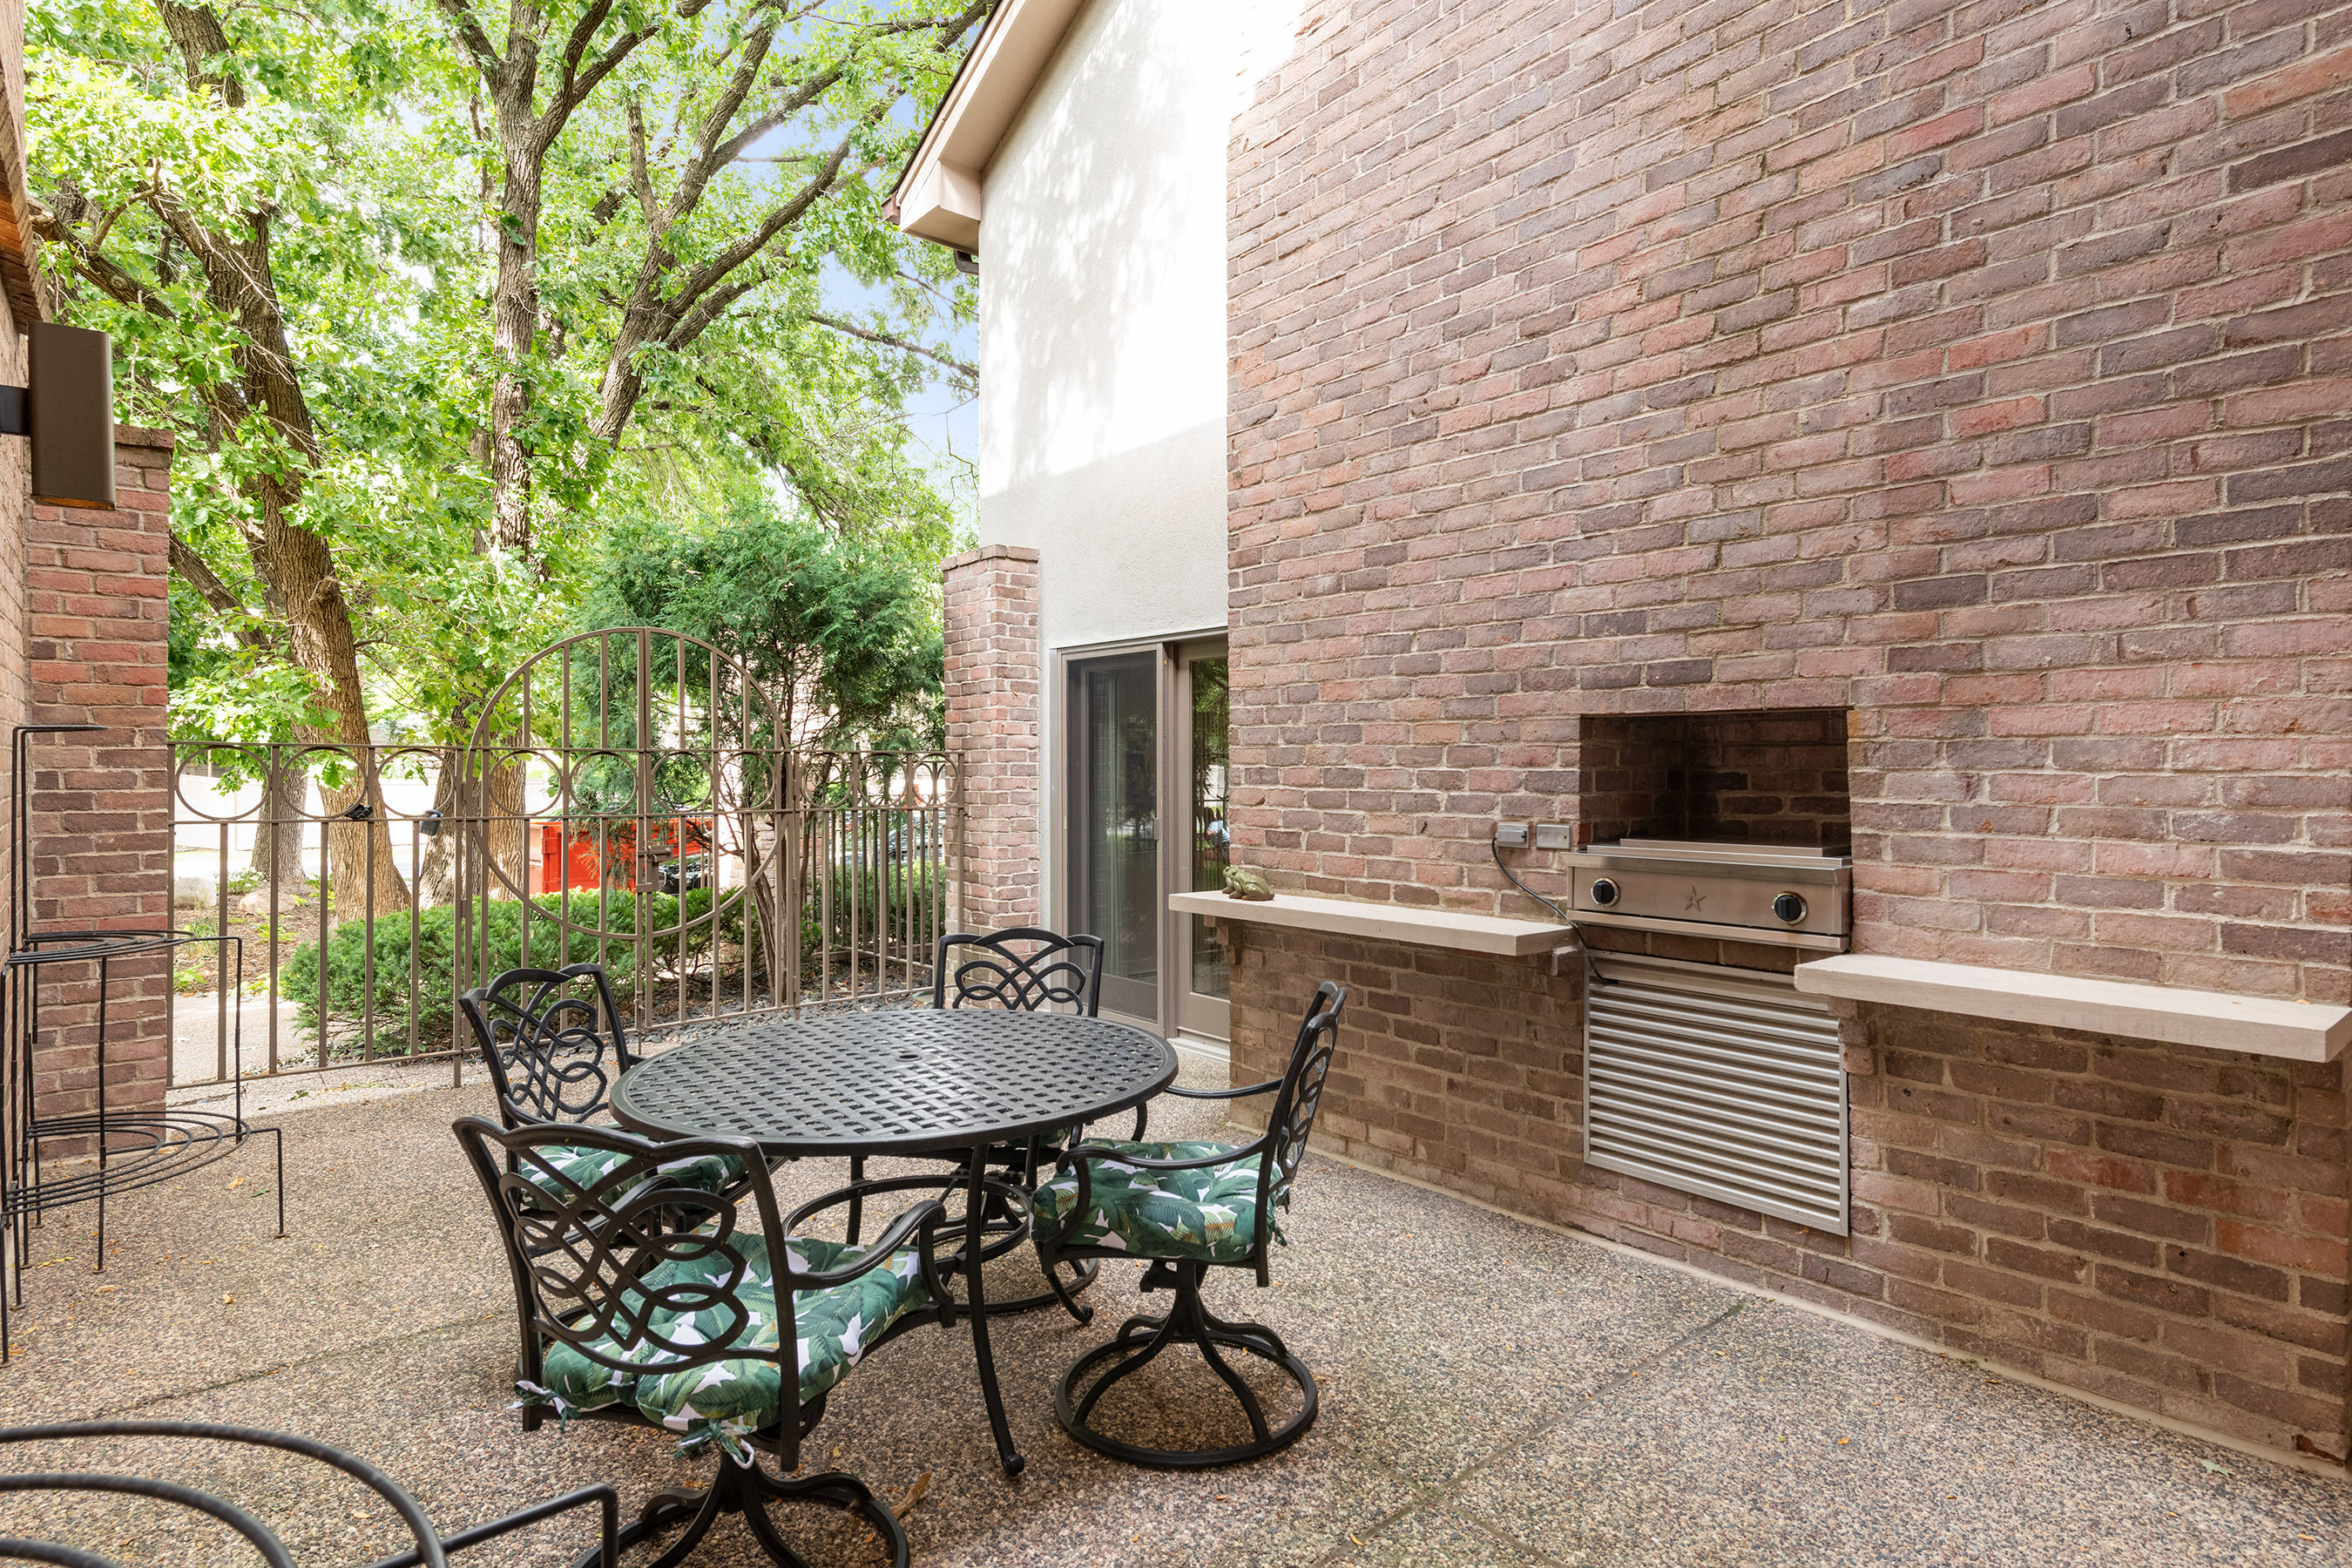 Private gated courtyard patio with a built-in gas grill